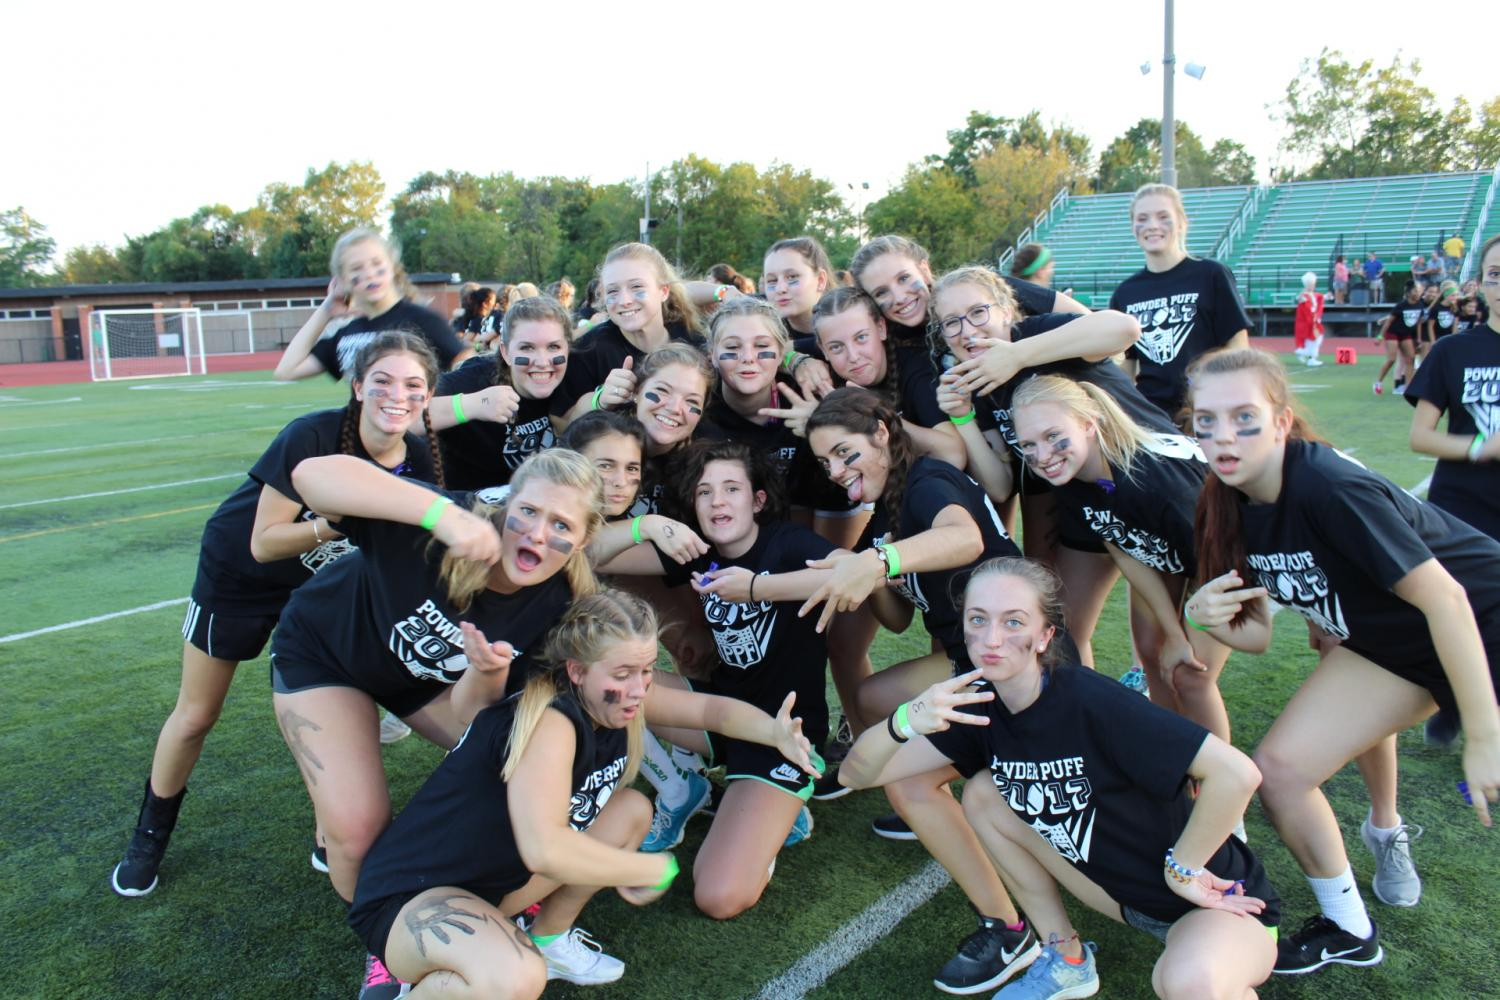 Seniors+pose+for+a+picture+before+the+2017+Powder+Puff+game+begins.